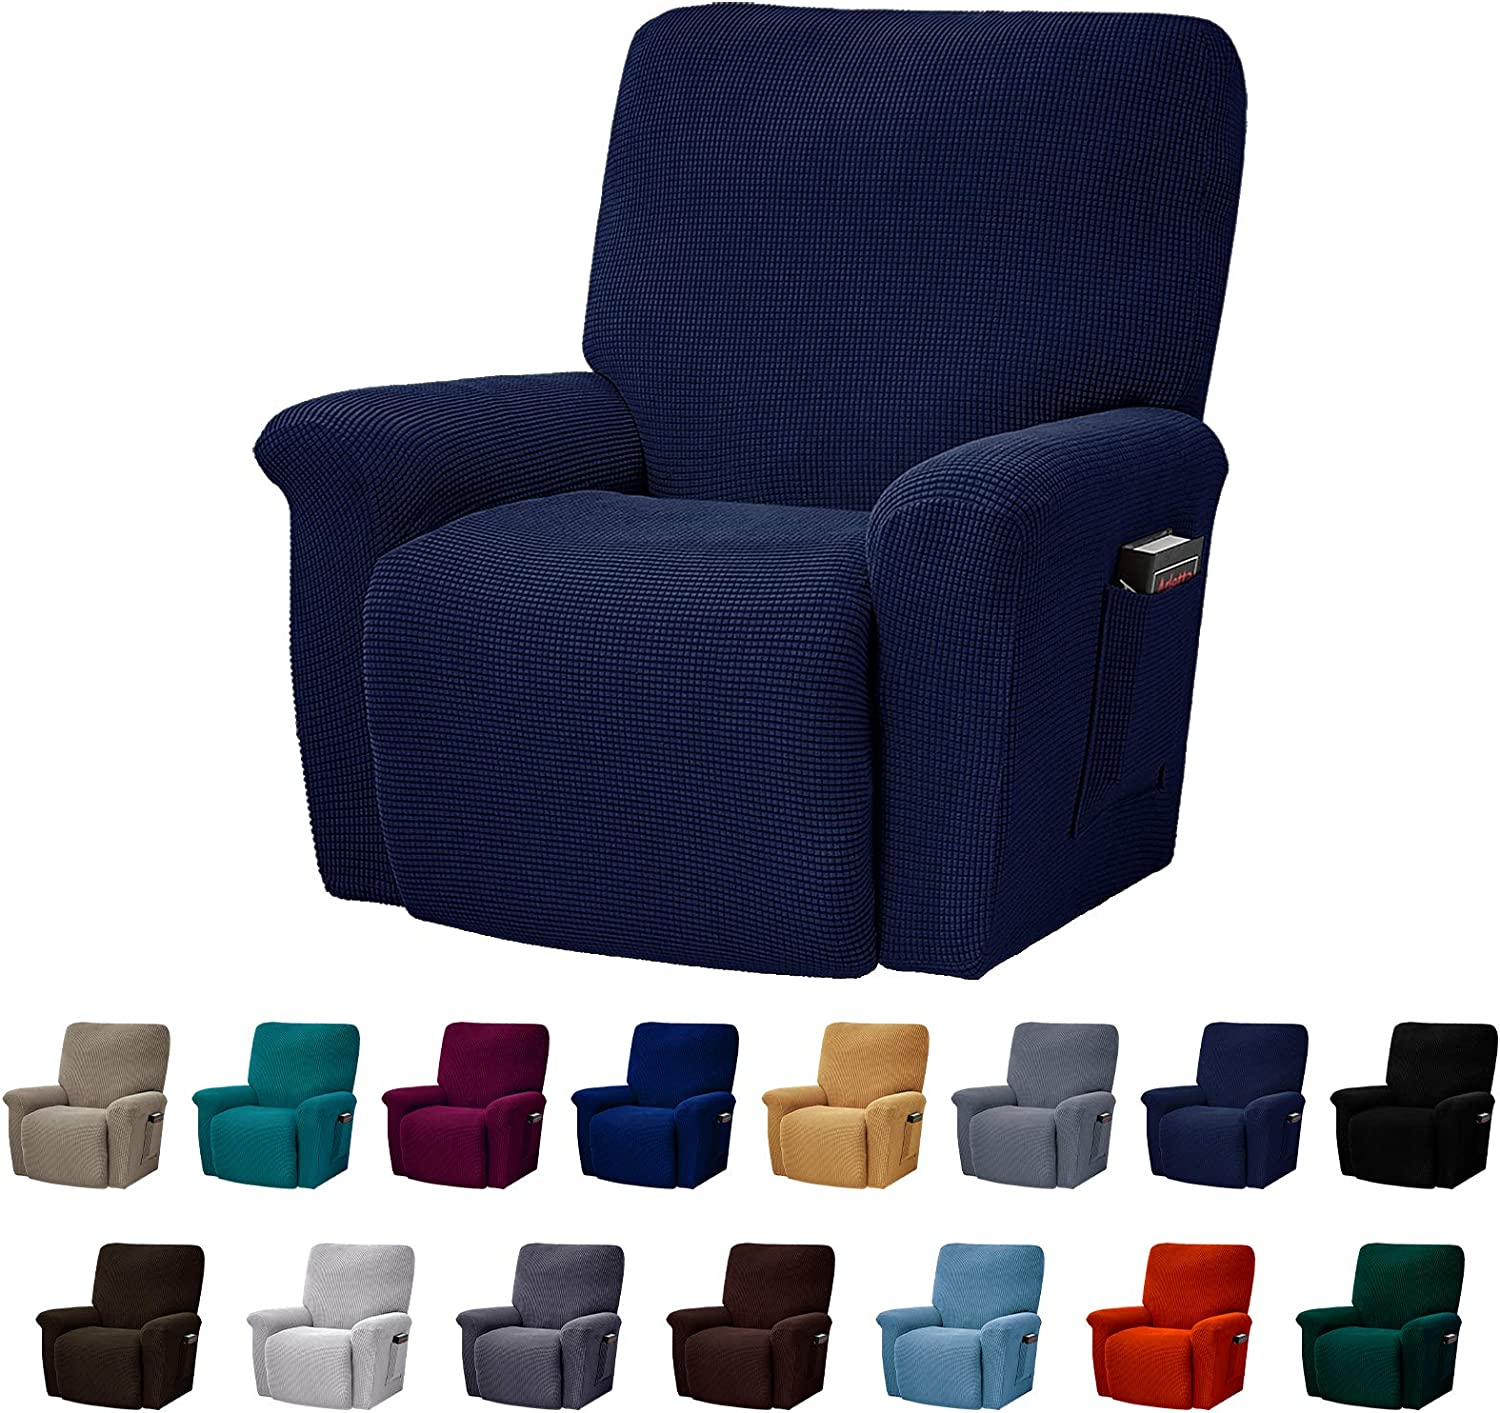 AlGaiety Stretch Recliner Slipcover Sofa Cover 4 Separate Pieces/1 Set Spandex Jacquard Fabric Furniture Protector Couch Cover with Elastic Bottom for Living Room(Recliner,Navy)